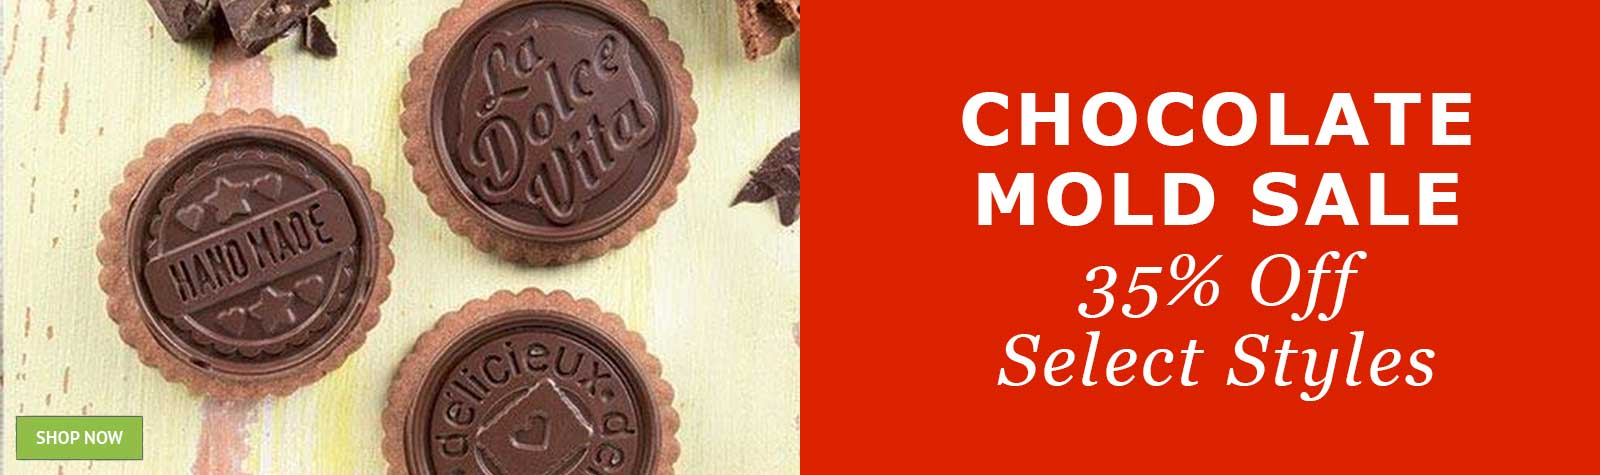 Chocolate Mold Sale